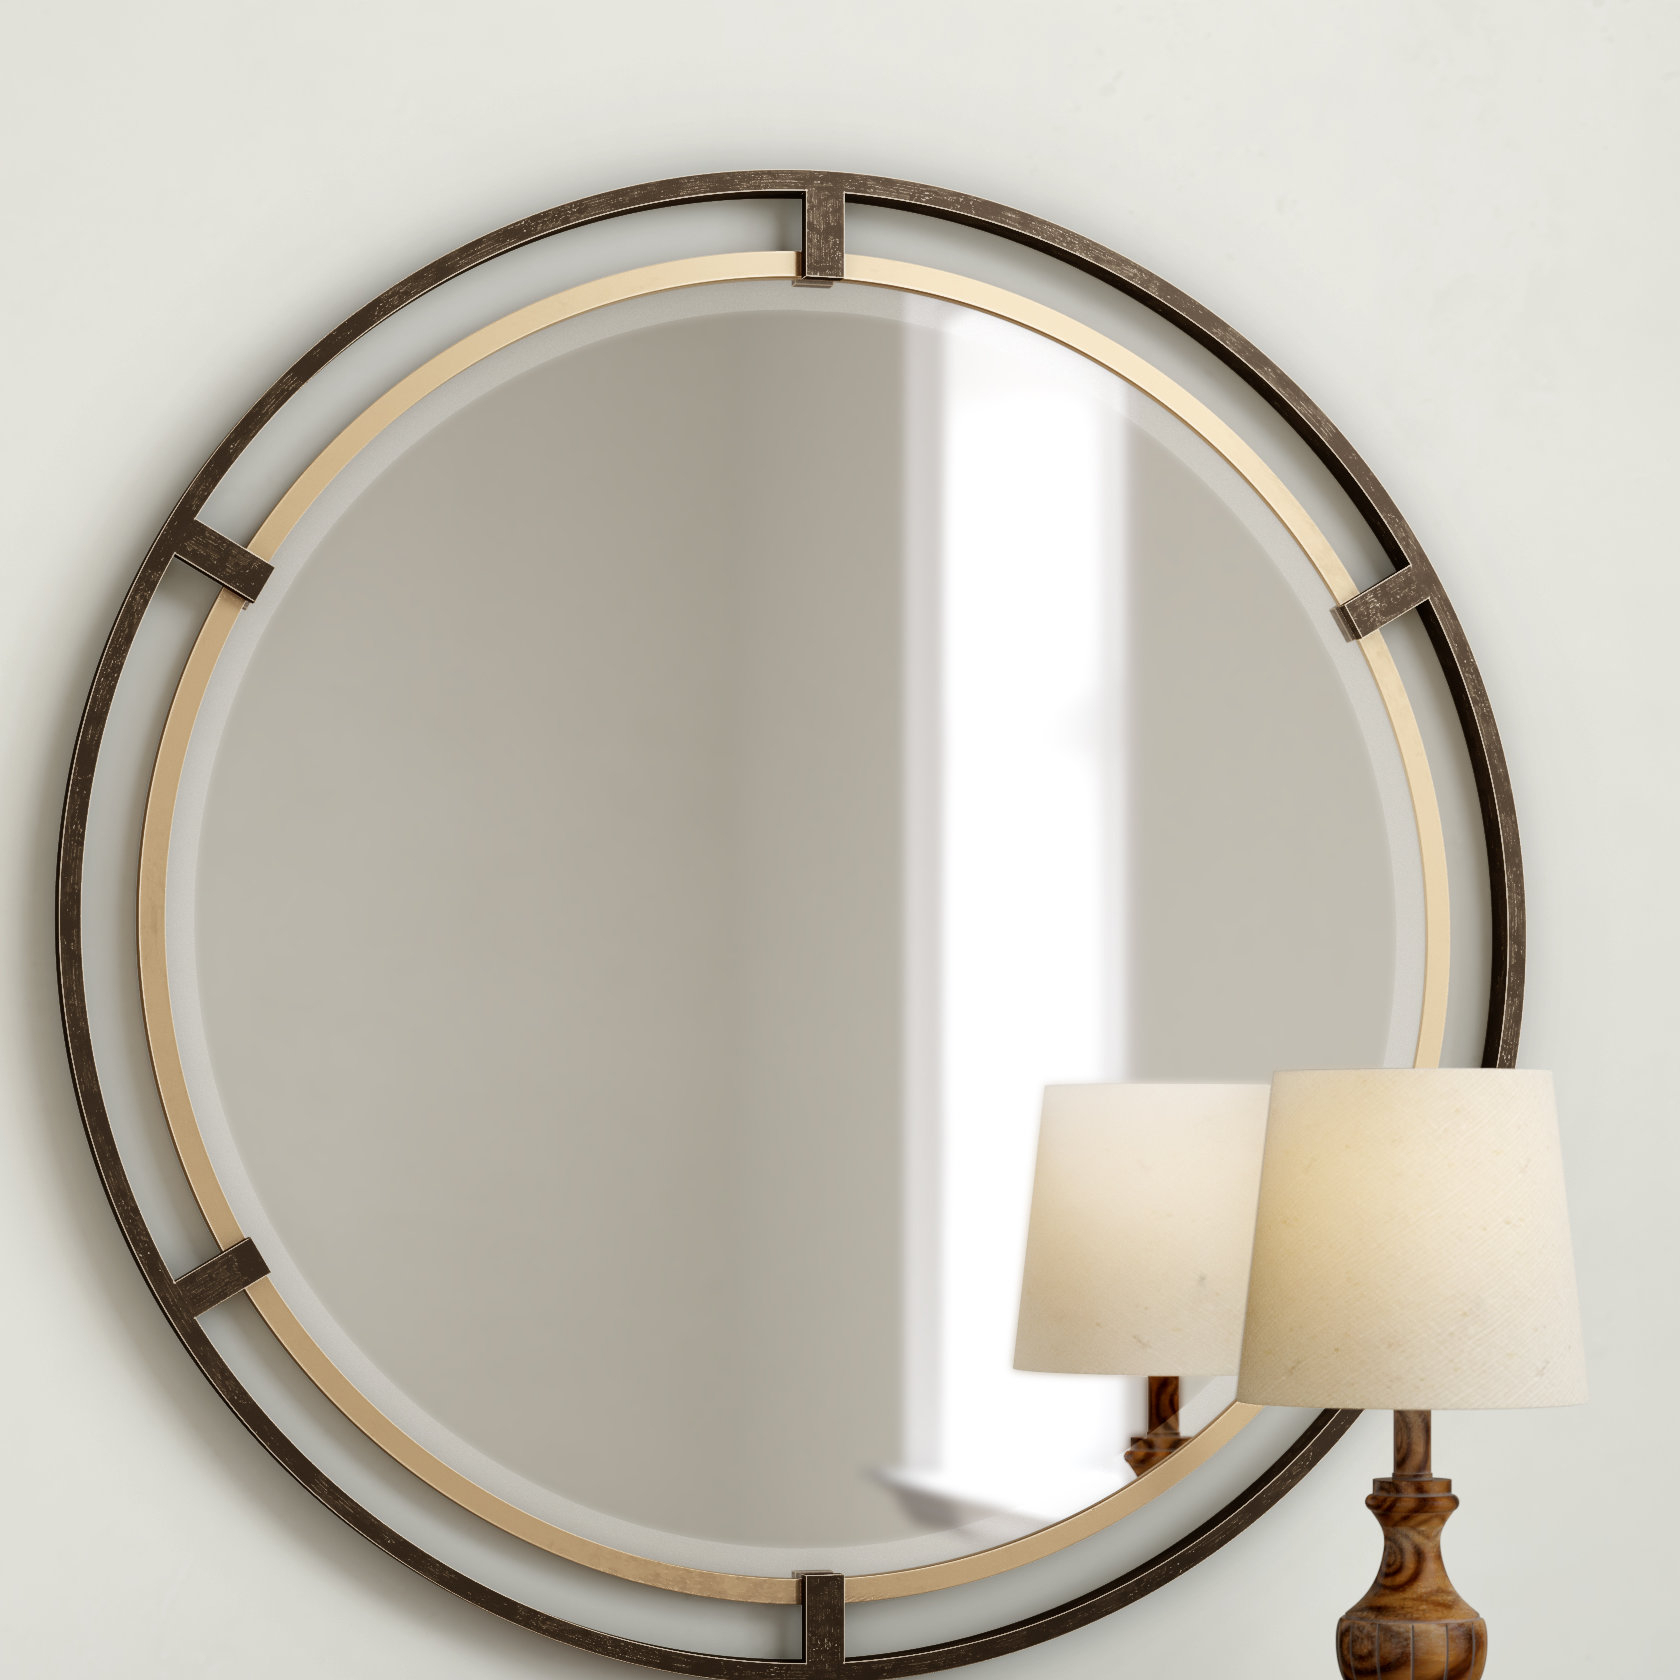 2020 Laurel Foundry Modern & Contemporary Accent Mirrors Pertaining To Pia Carrizo Modern & Contemporary Accent Mirror (View 14 of 20)